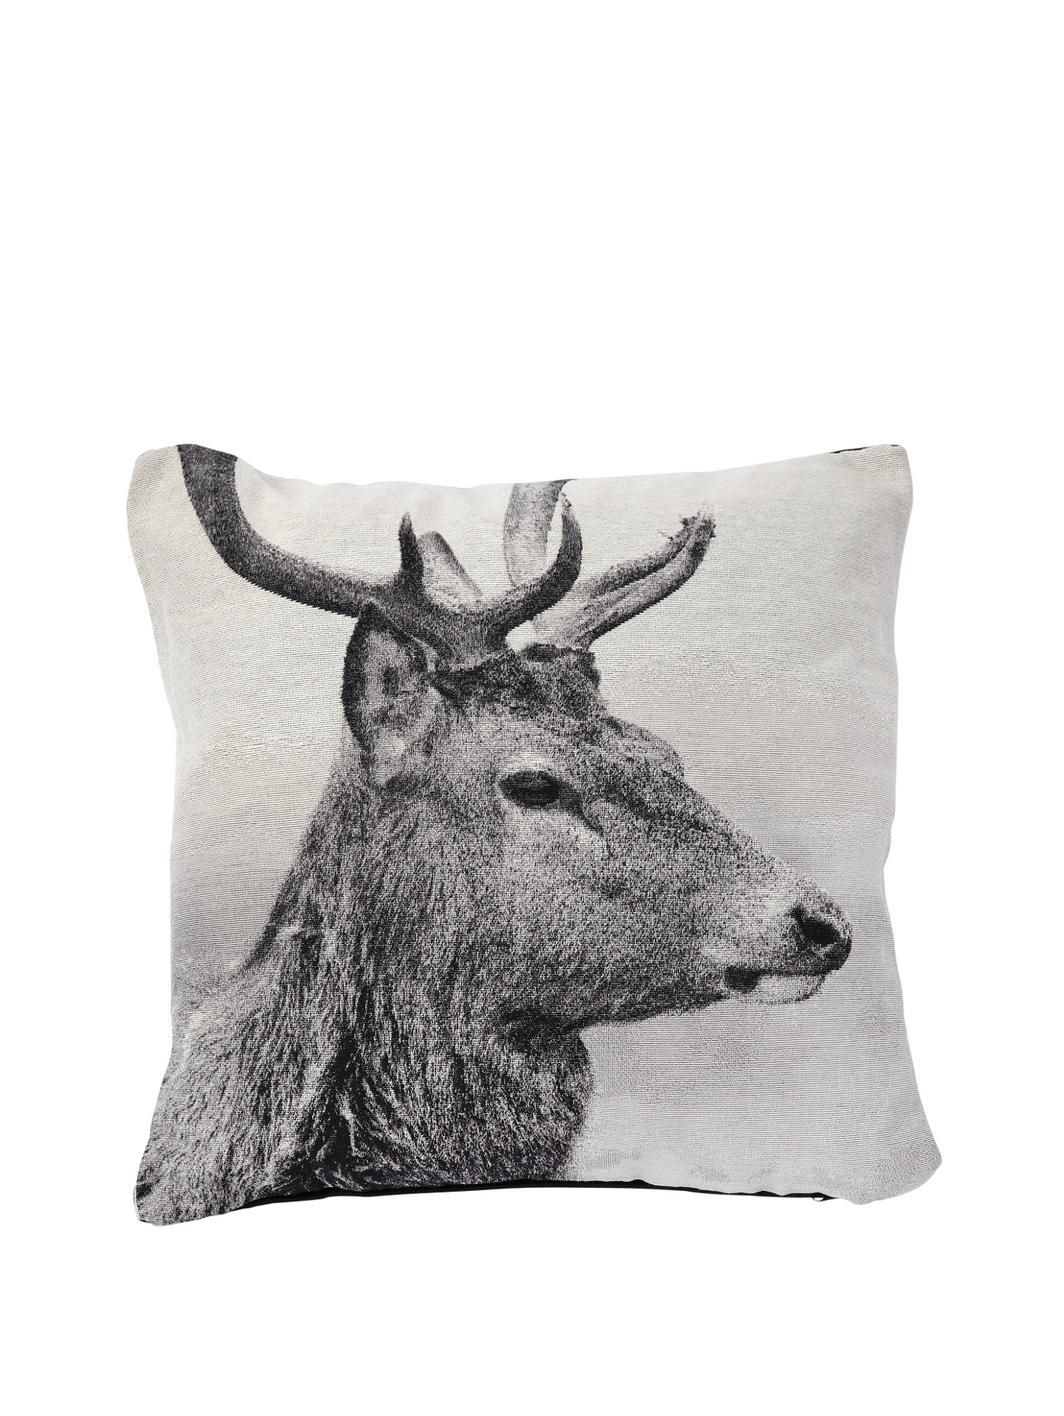 Newland Stag Printed Cushion 16a633251